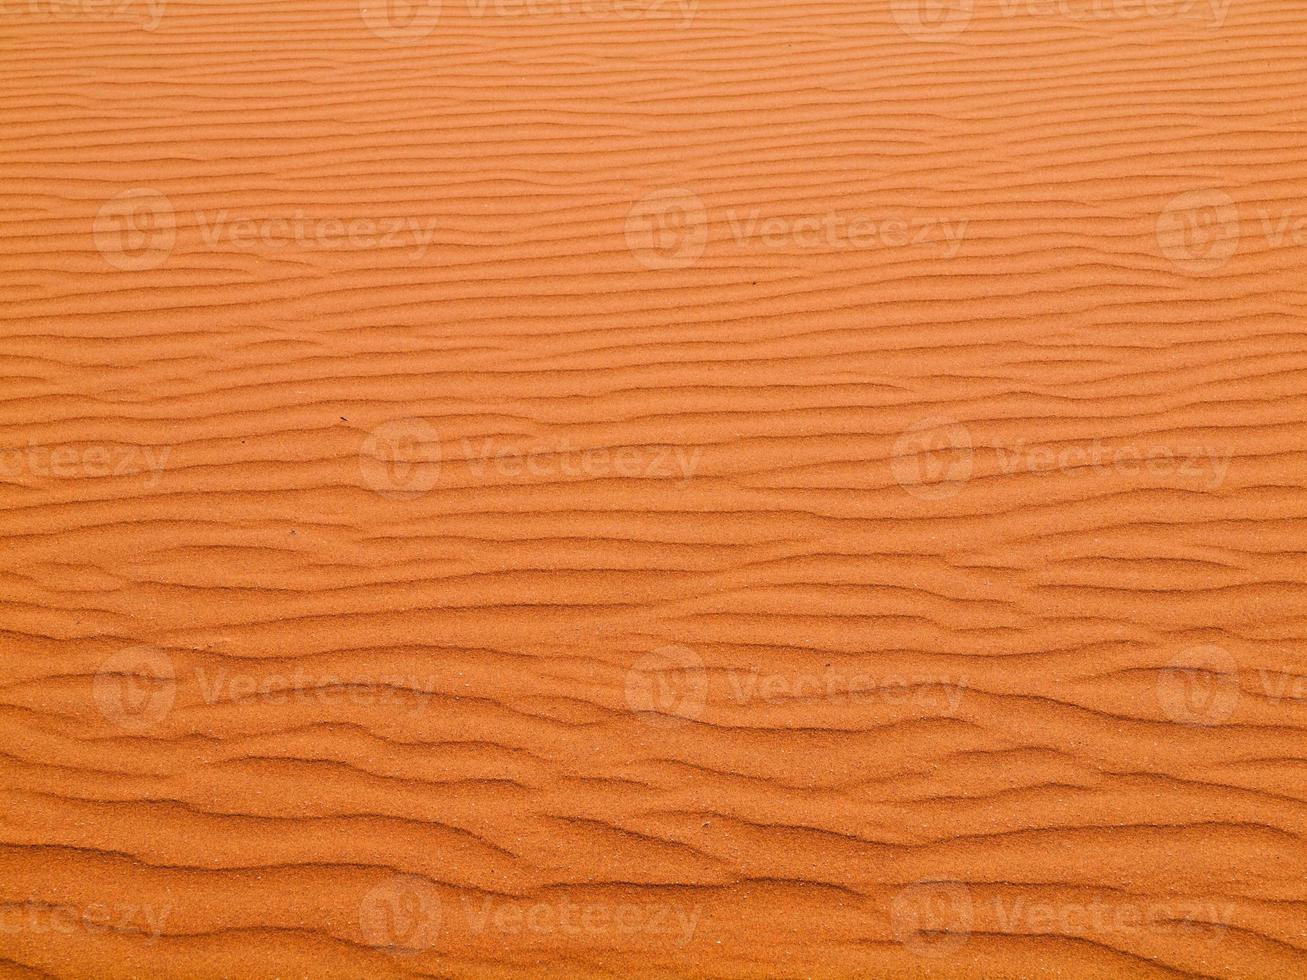 Red sand texture photo